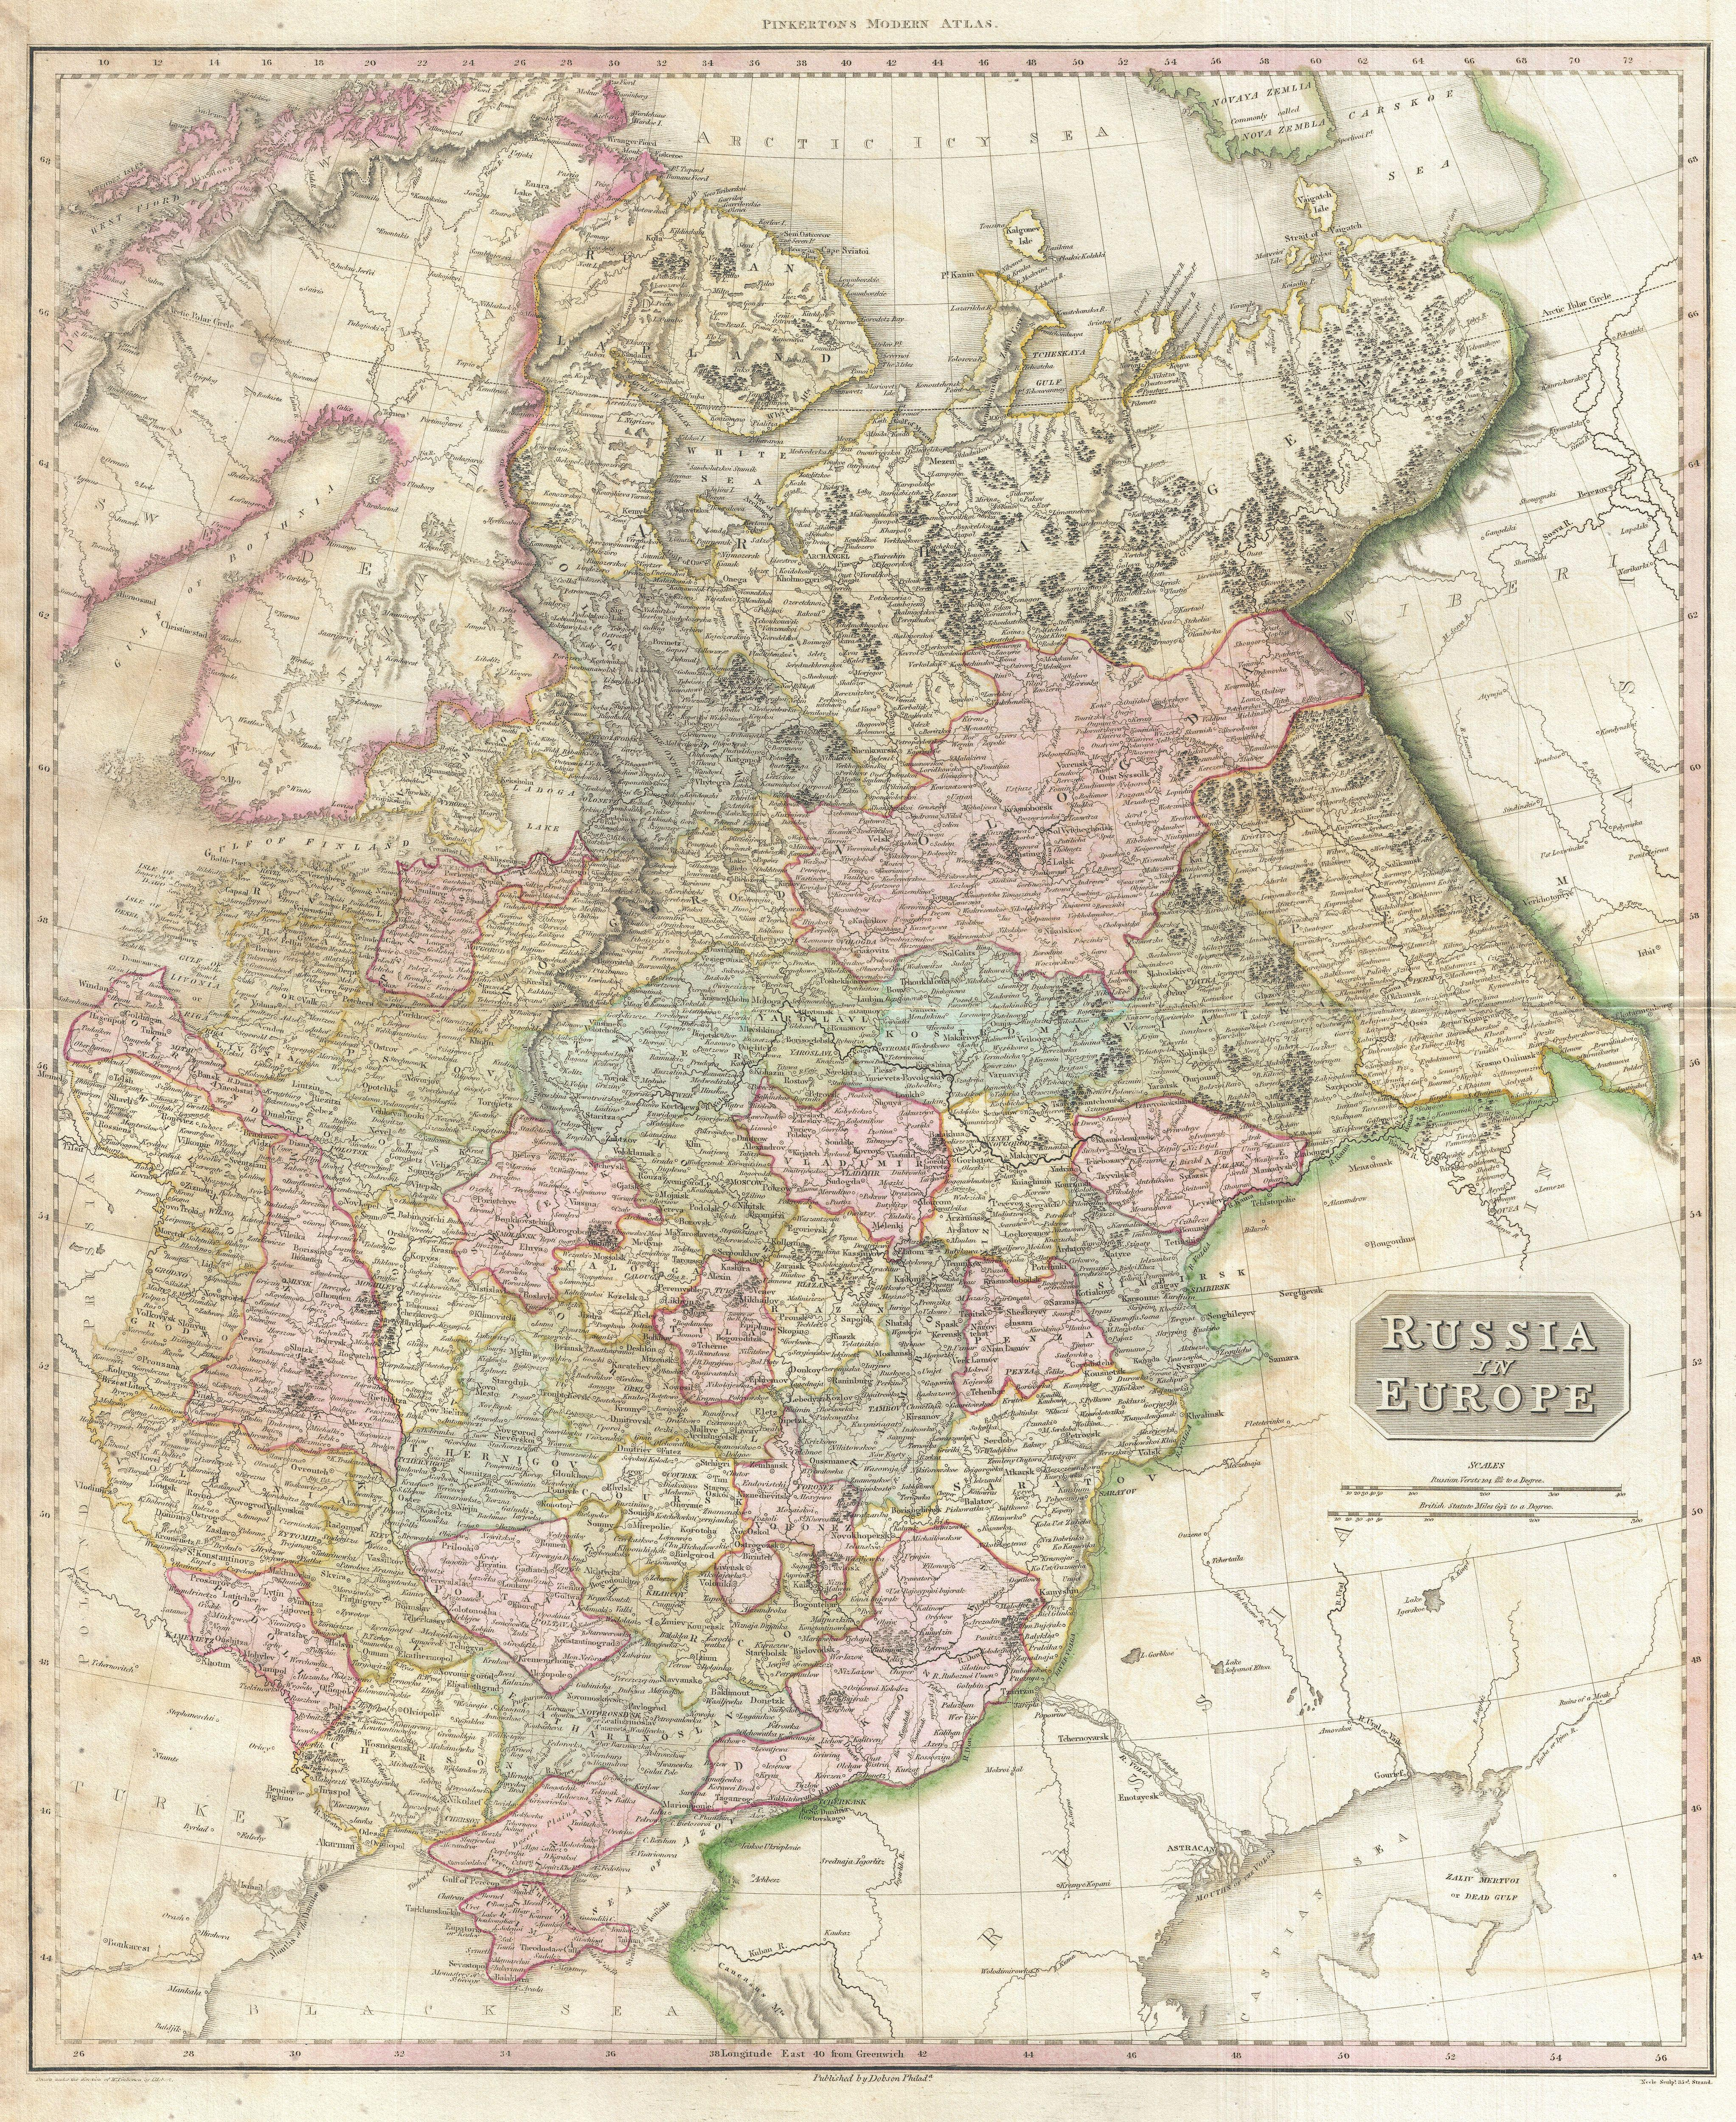 Russia Map 2011 Pinkerton Map of Russia in